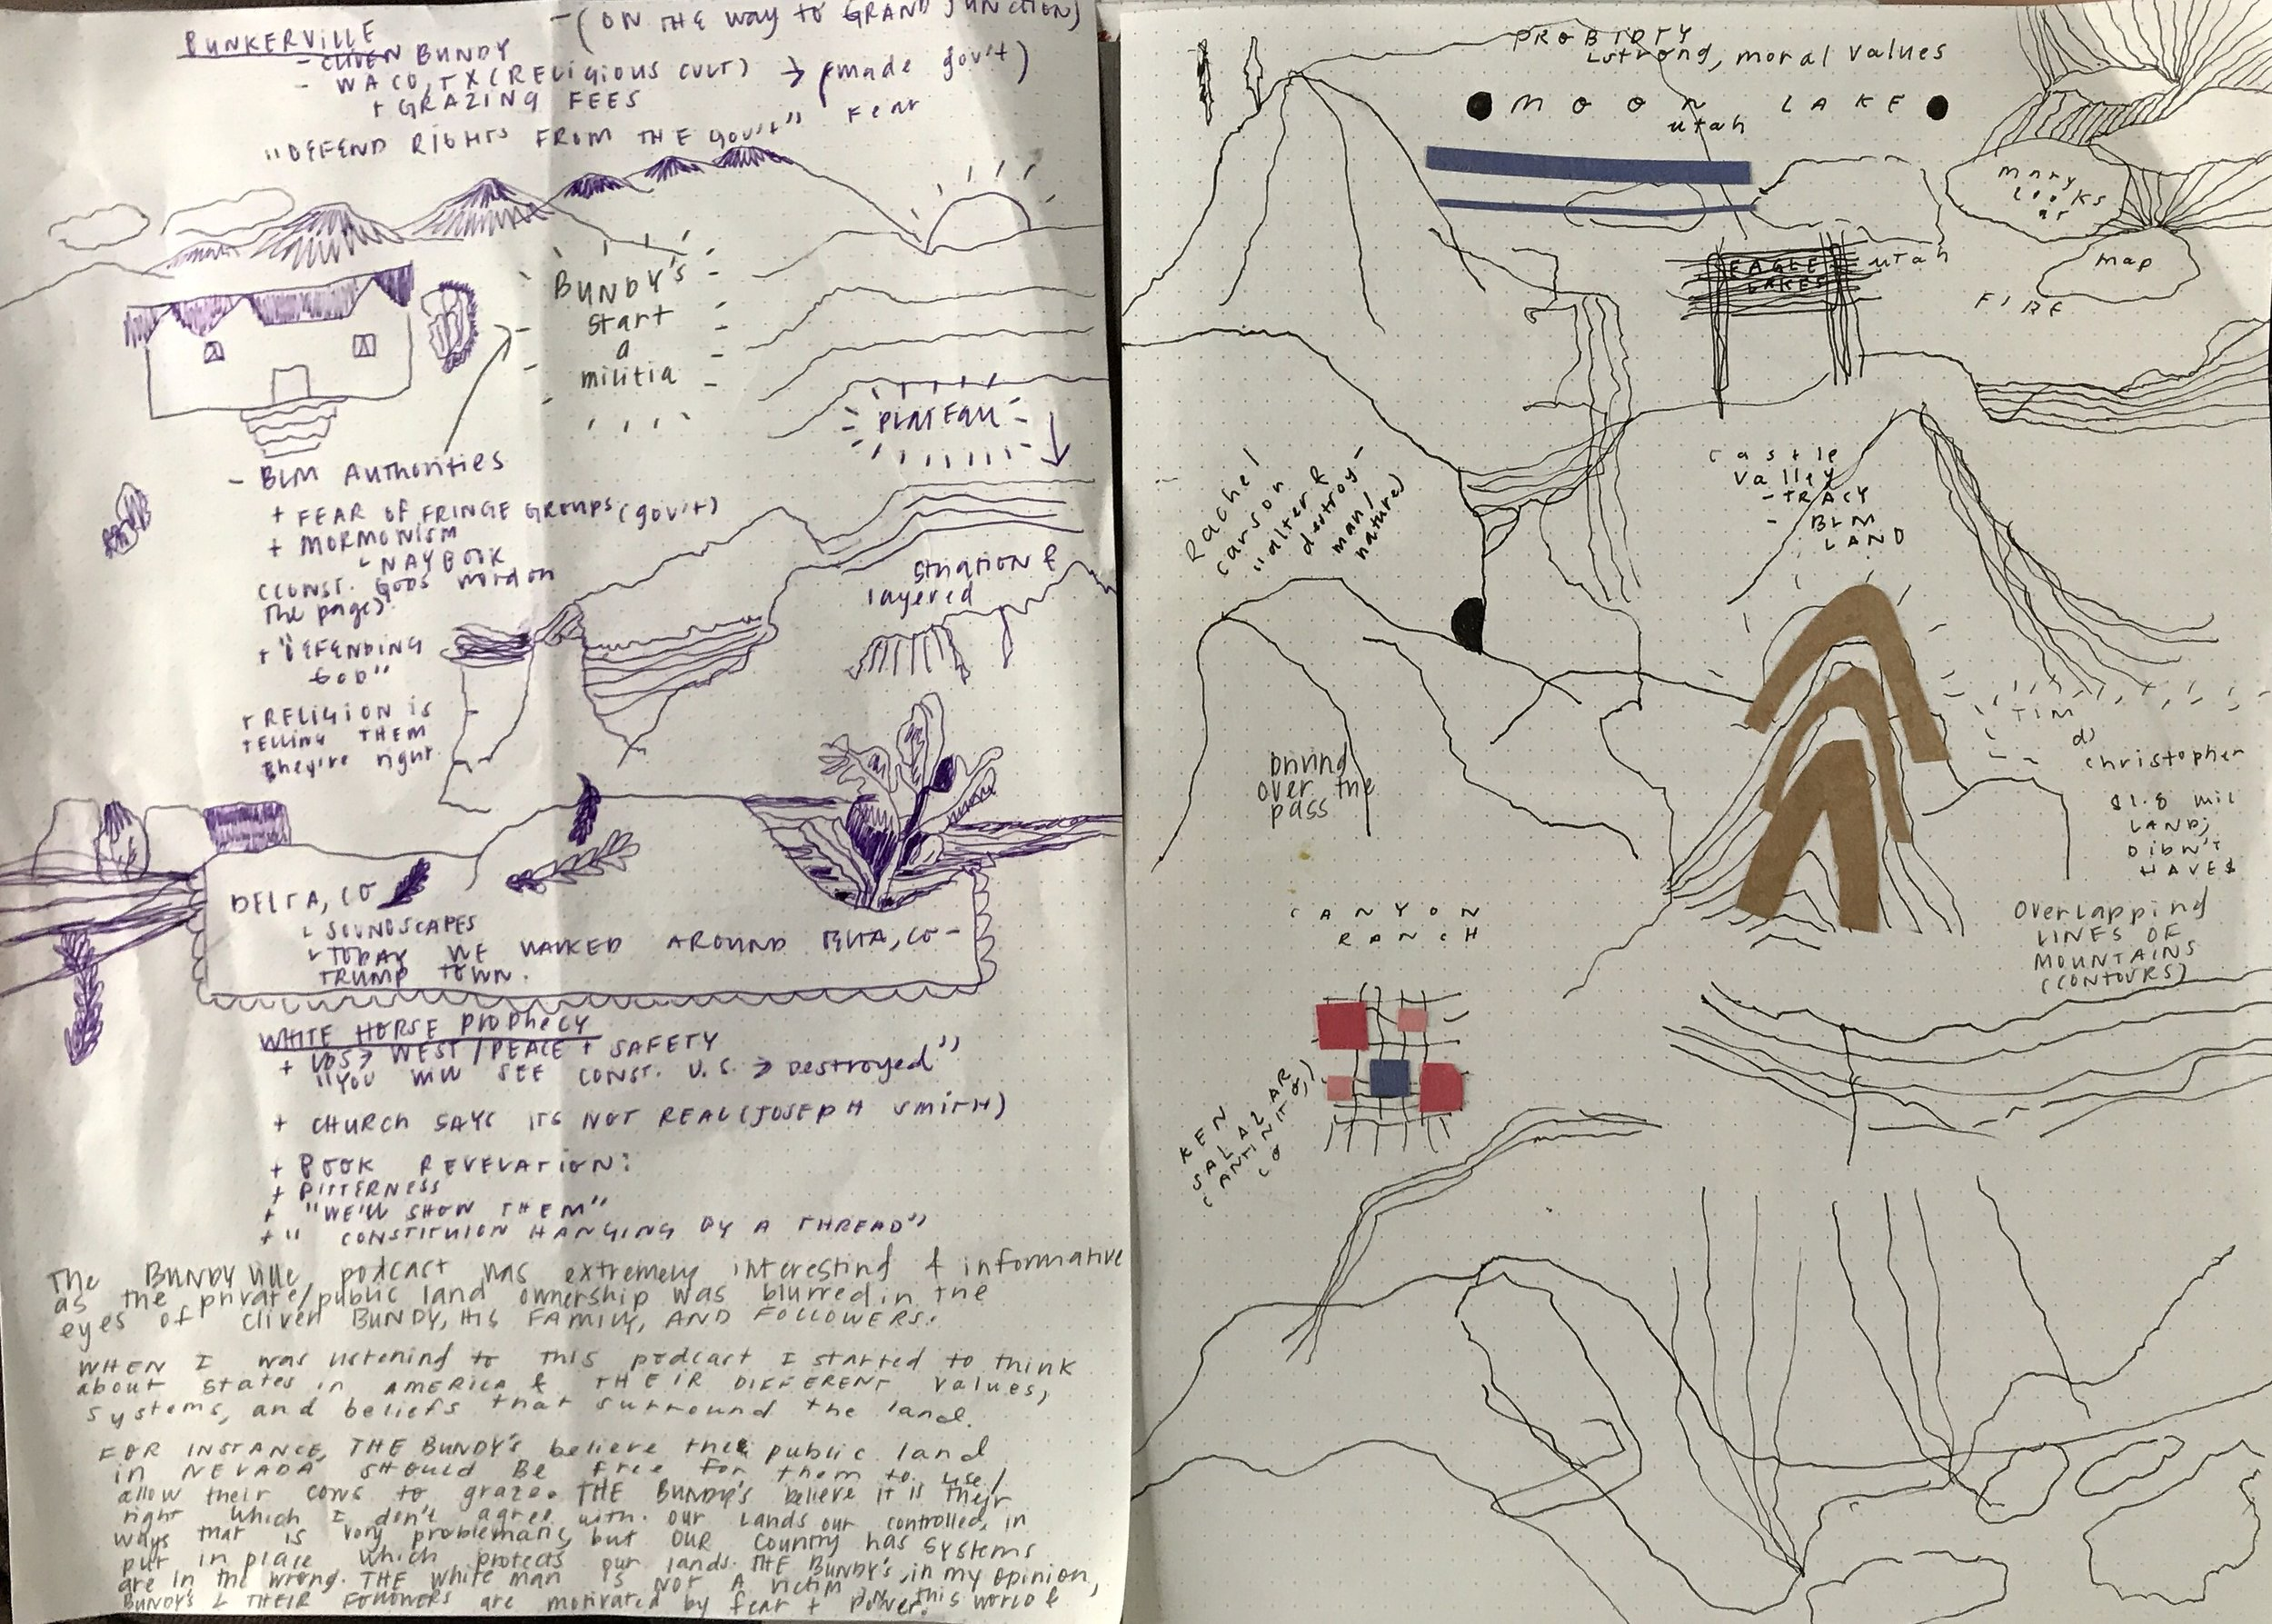 deep listening at the ranch and sketches of my project idea which consists of quilt and weaving pattern